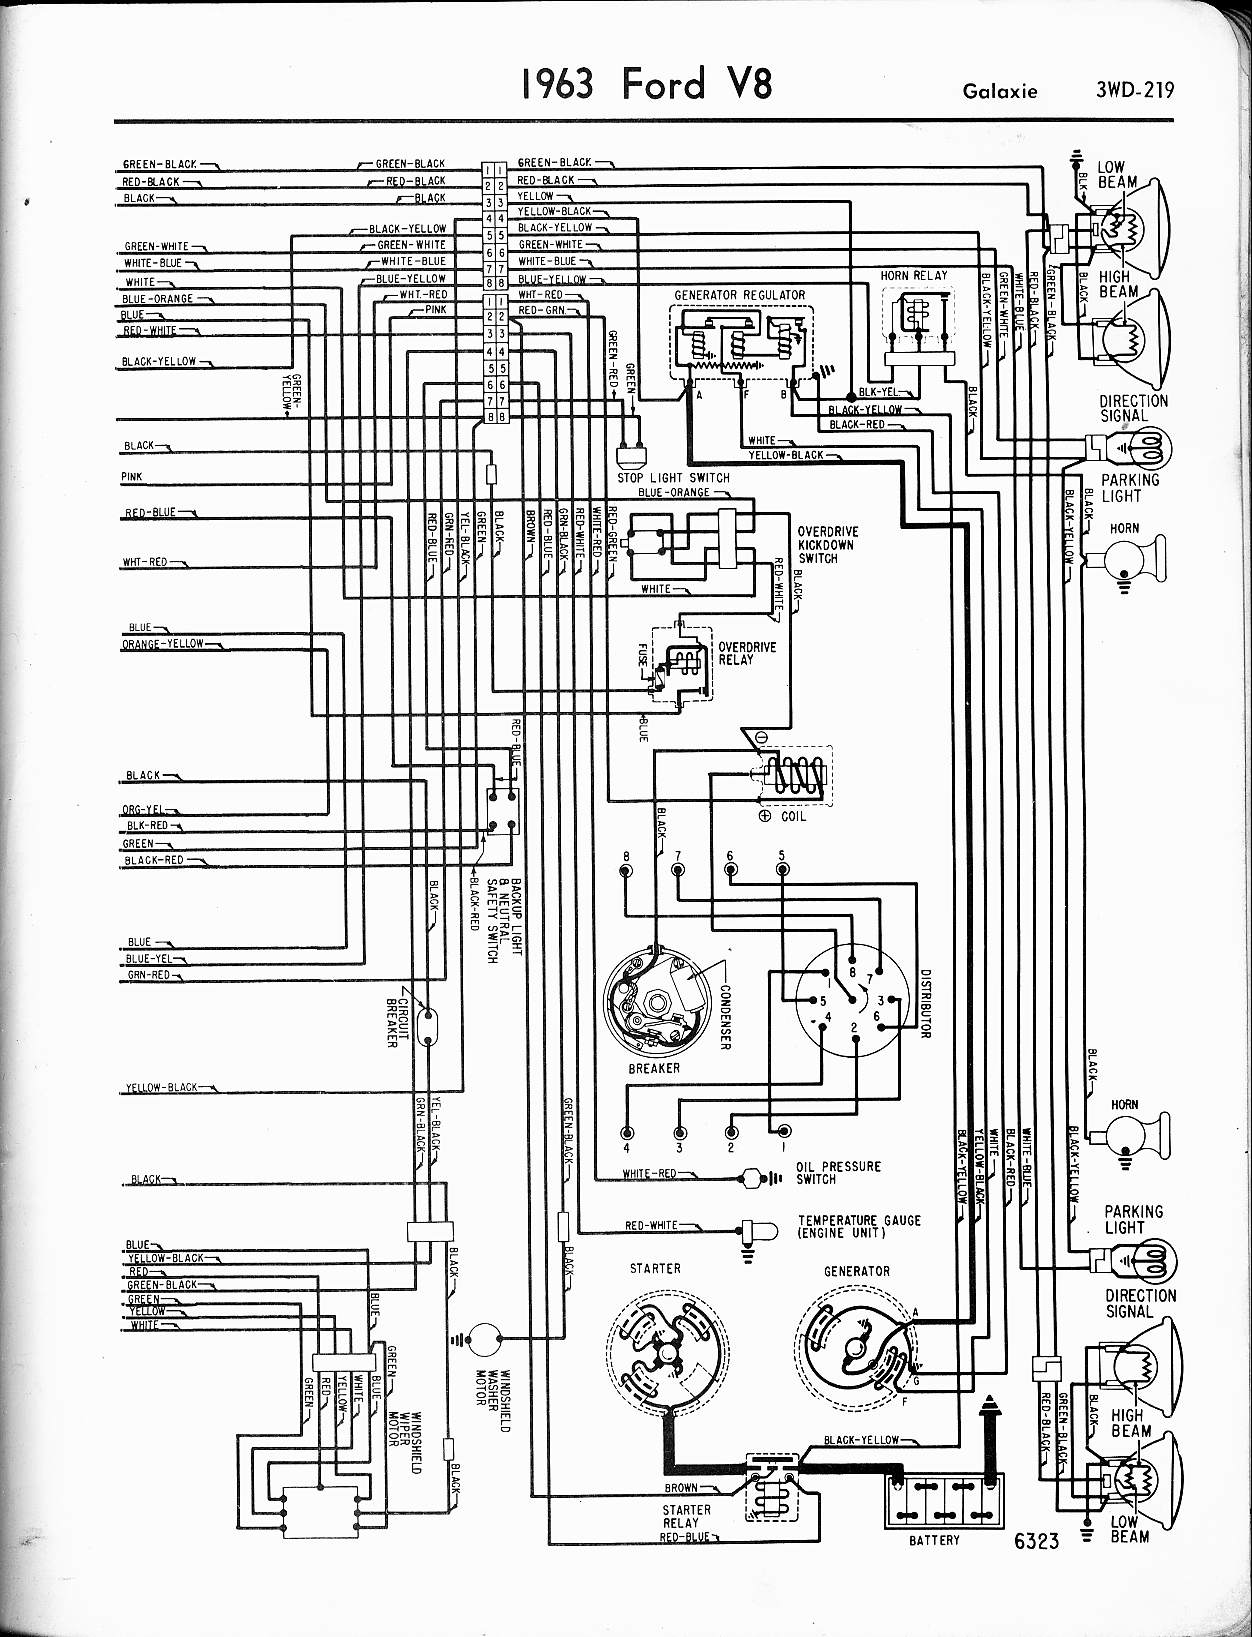 63 Fairlane Wiring Diagram Guide And Troubleshooting Of 1967 Ford Diagrams 65 Todays Rh 5 6 9 1813weddingbarn Com 67 64